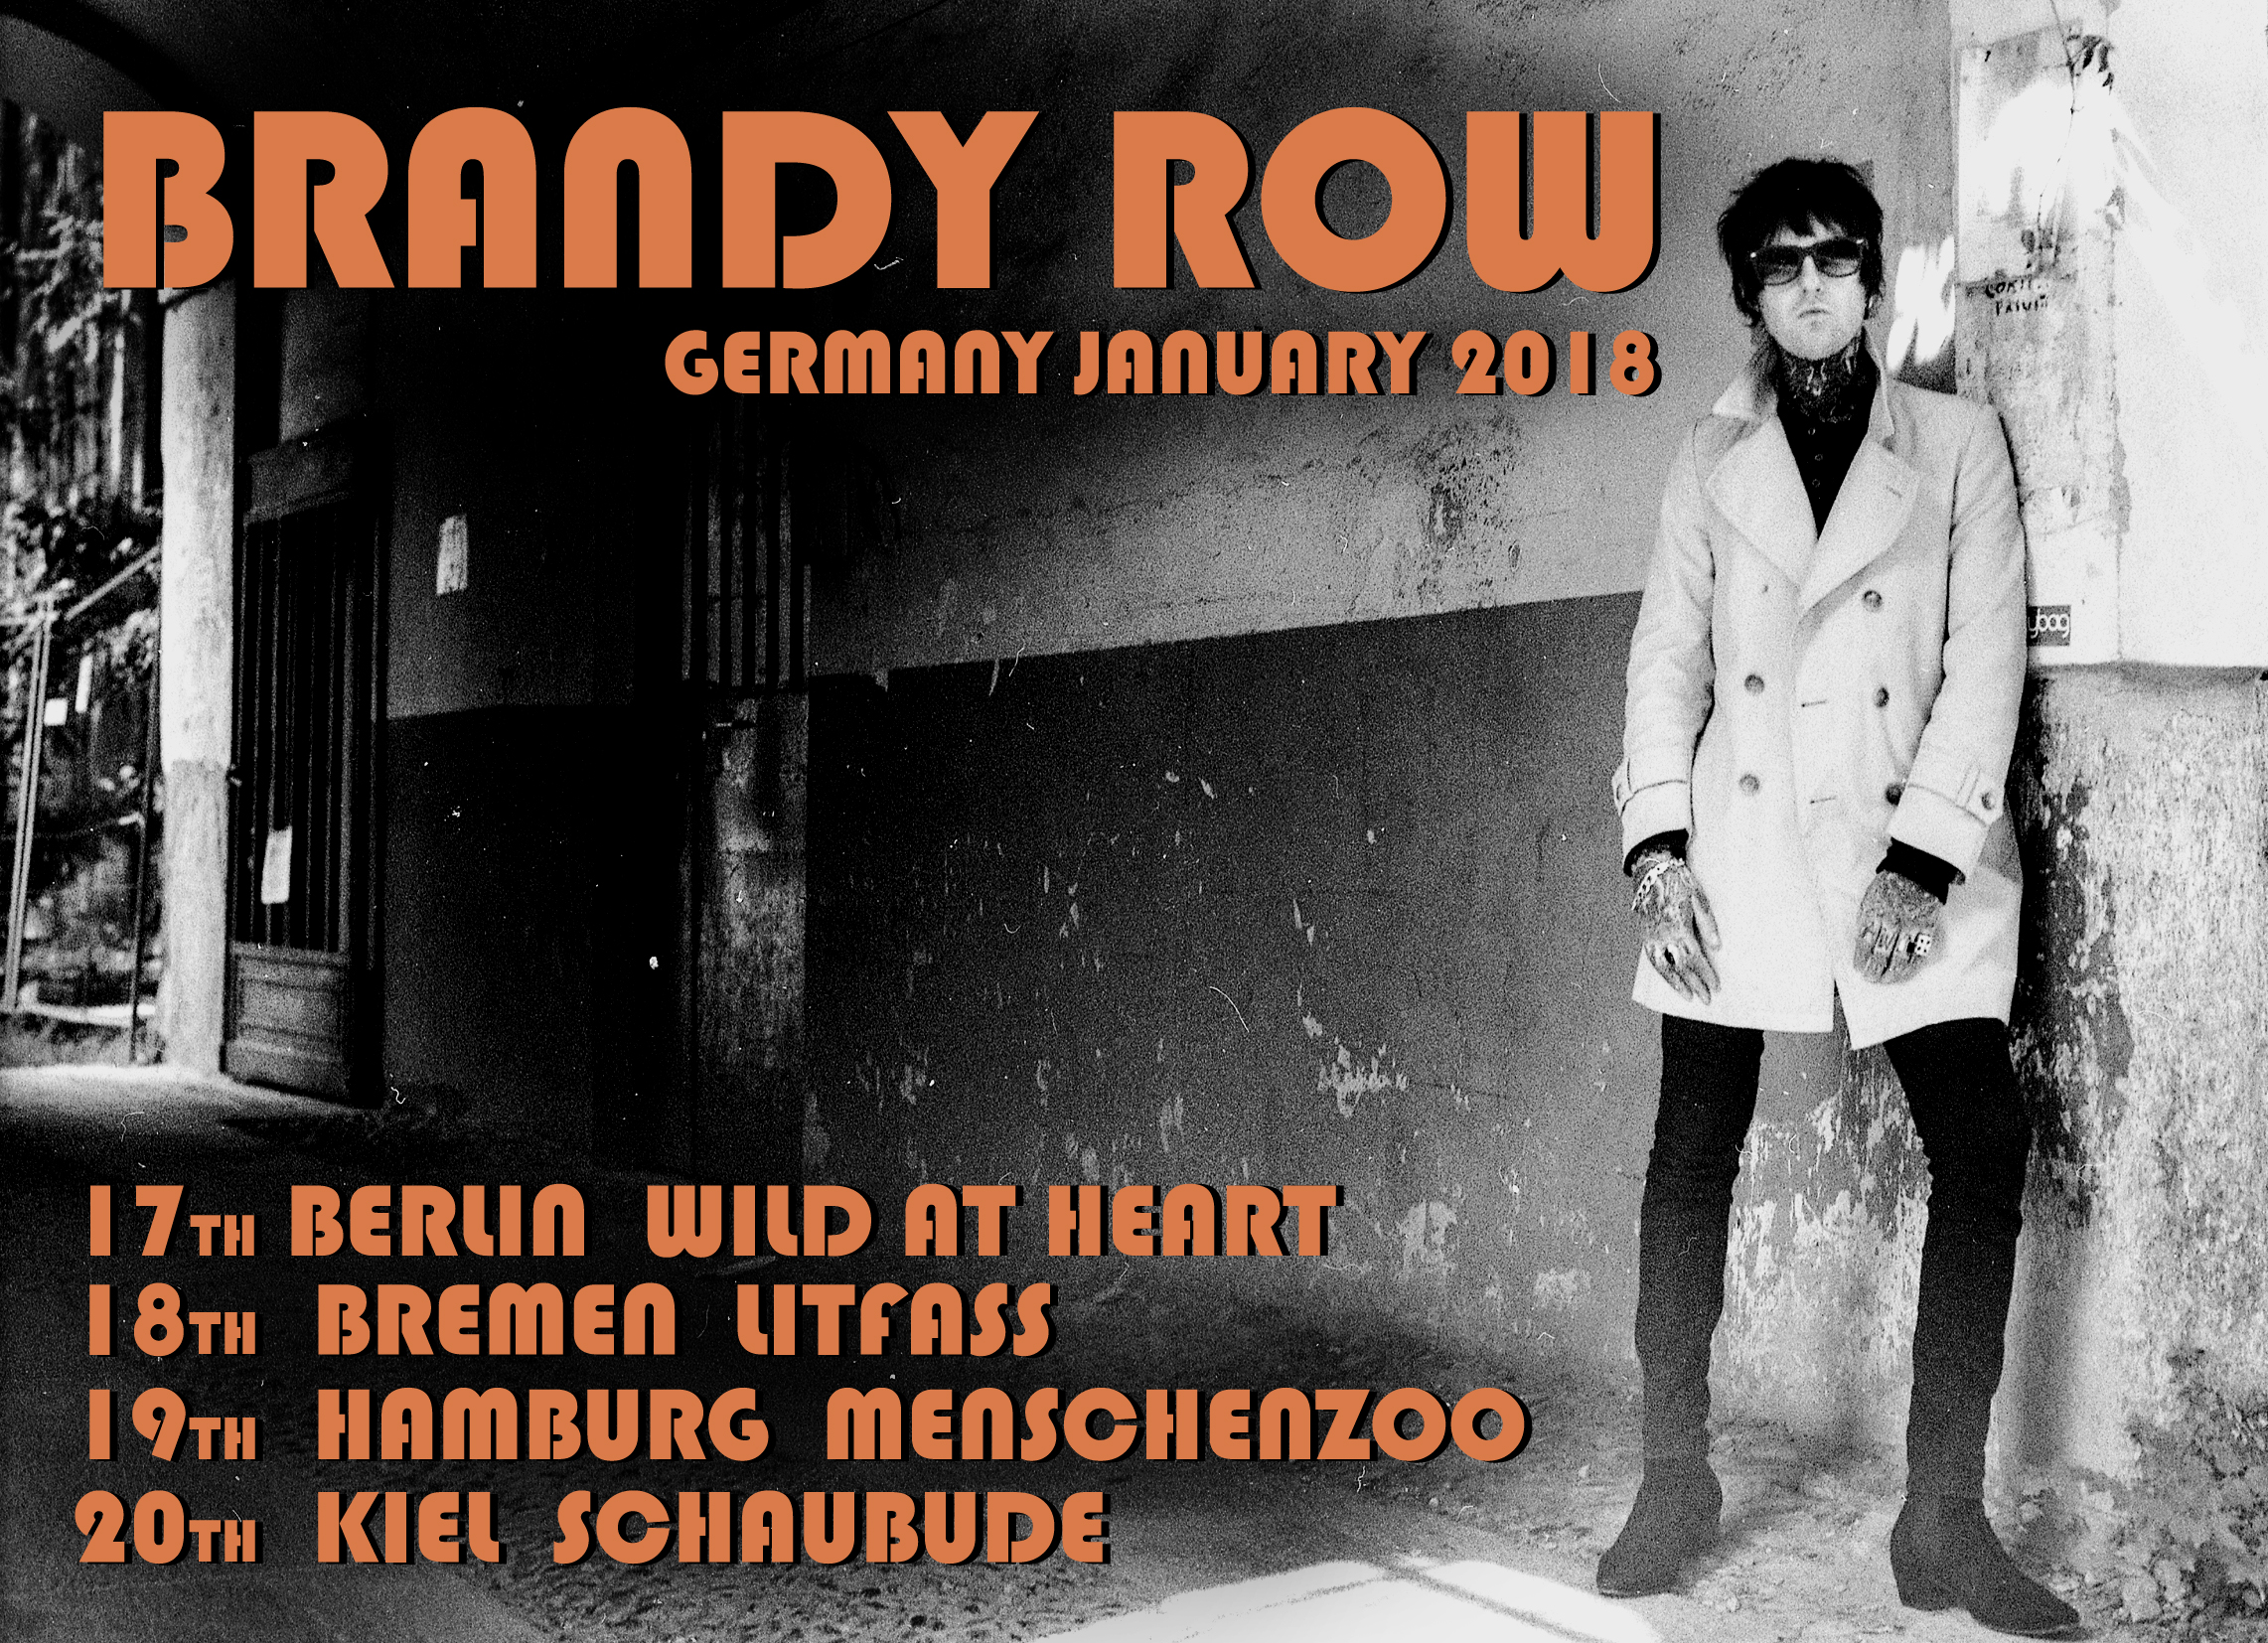 Germany Tour is just around the corner. First stop Berlin!